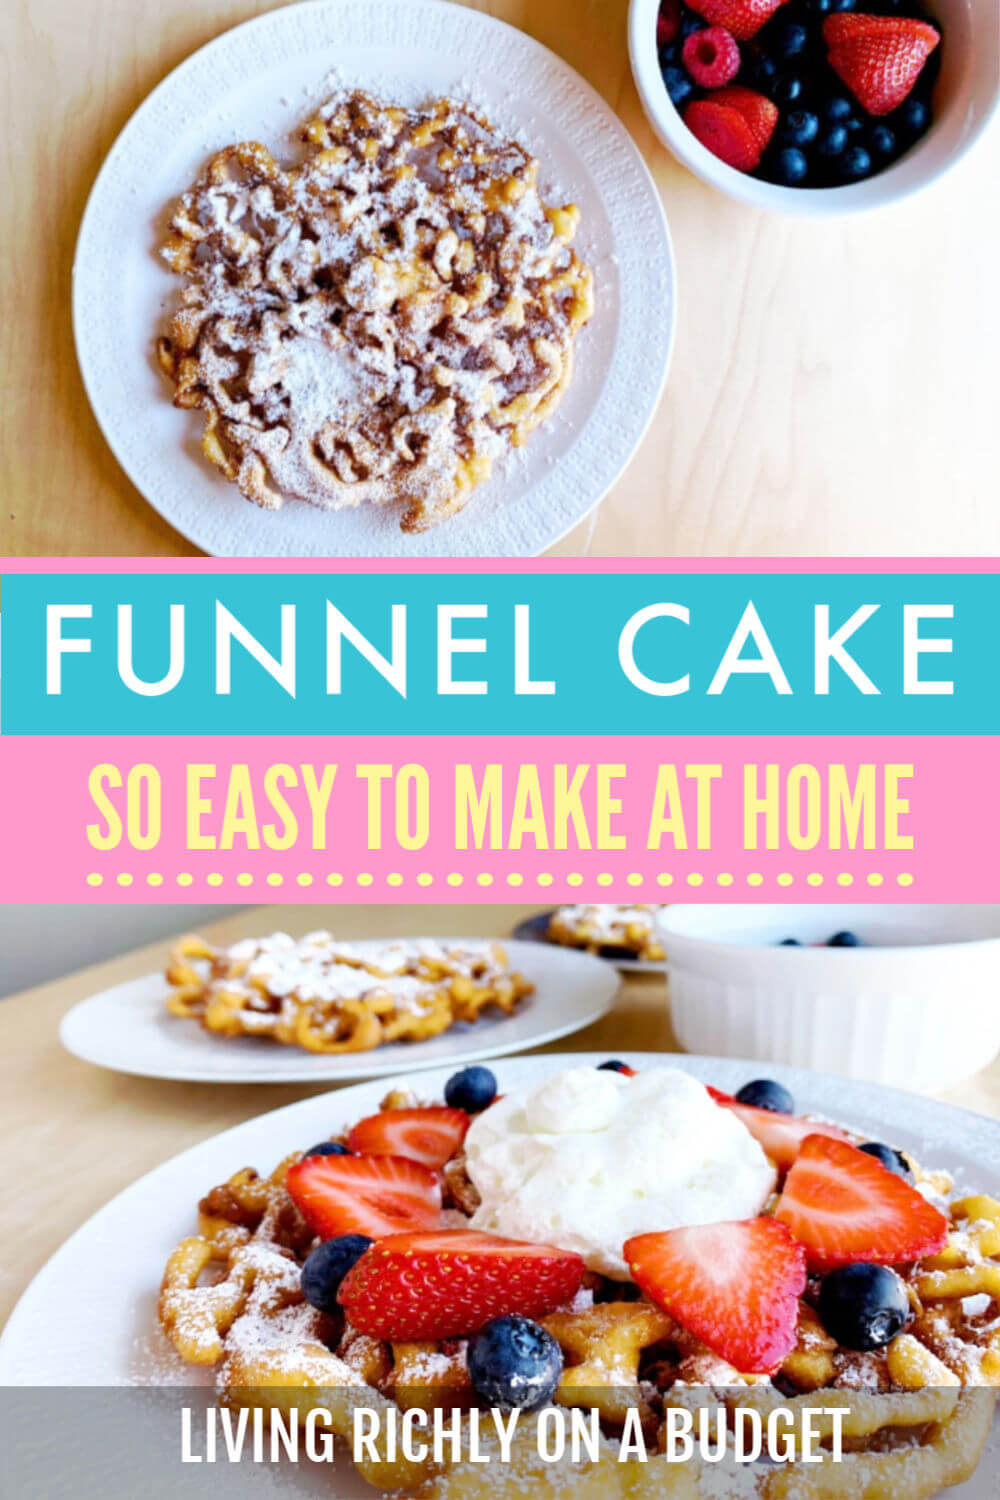 Easy Funnel Cake Recipe Image